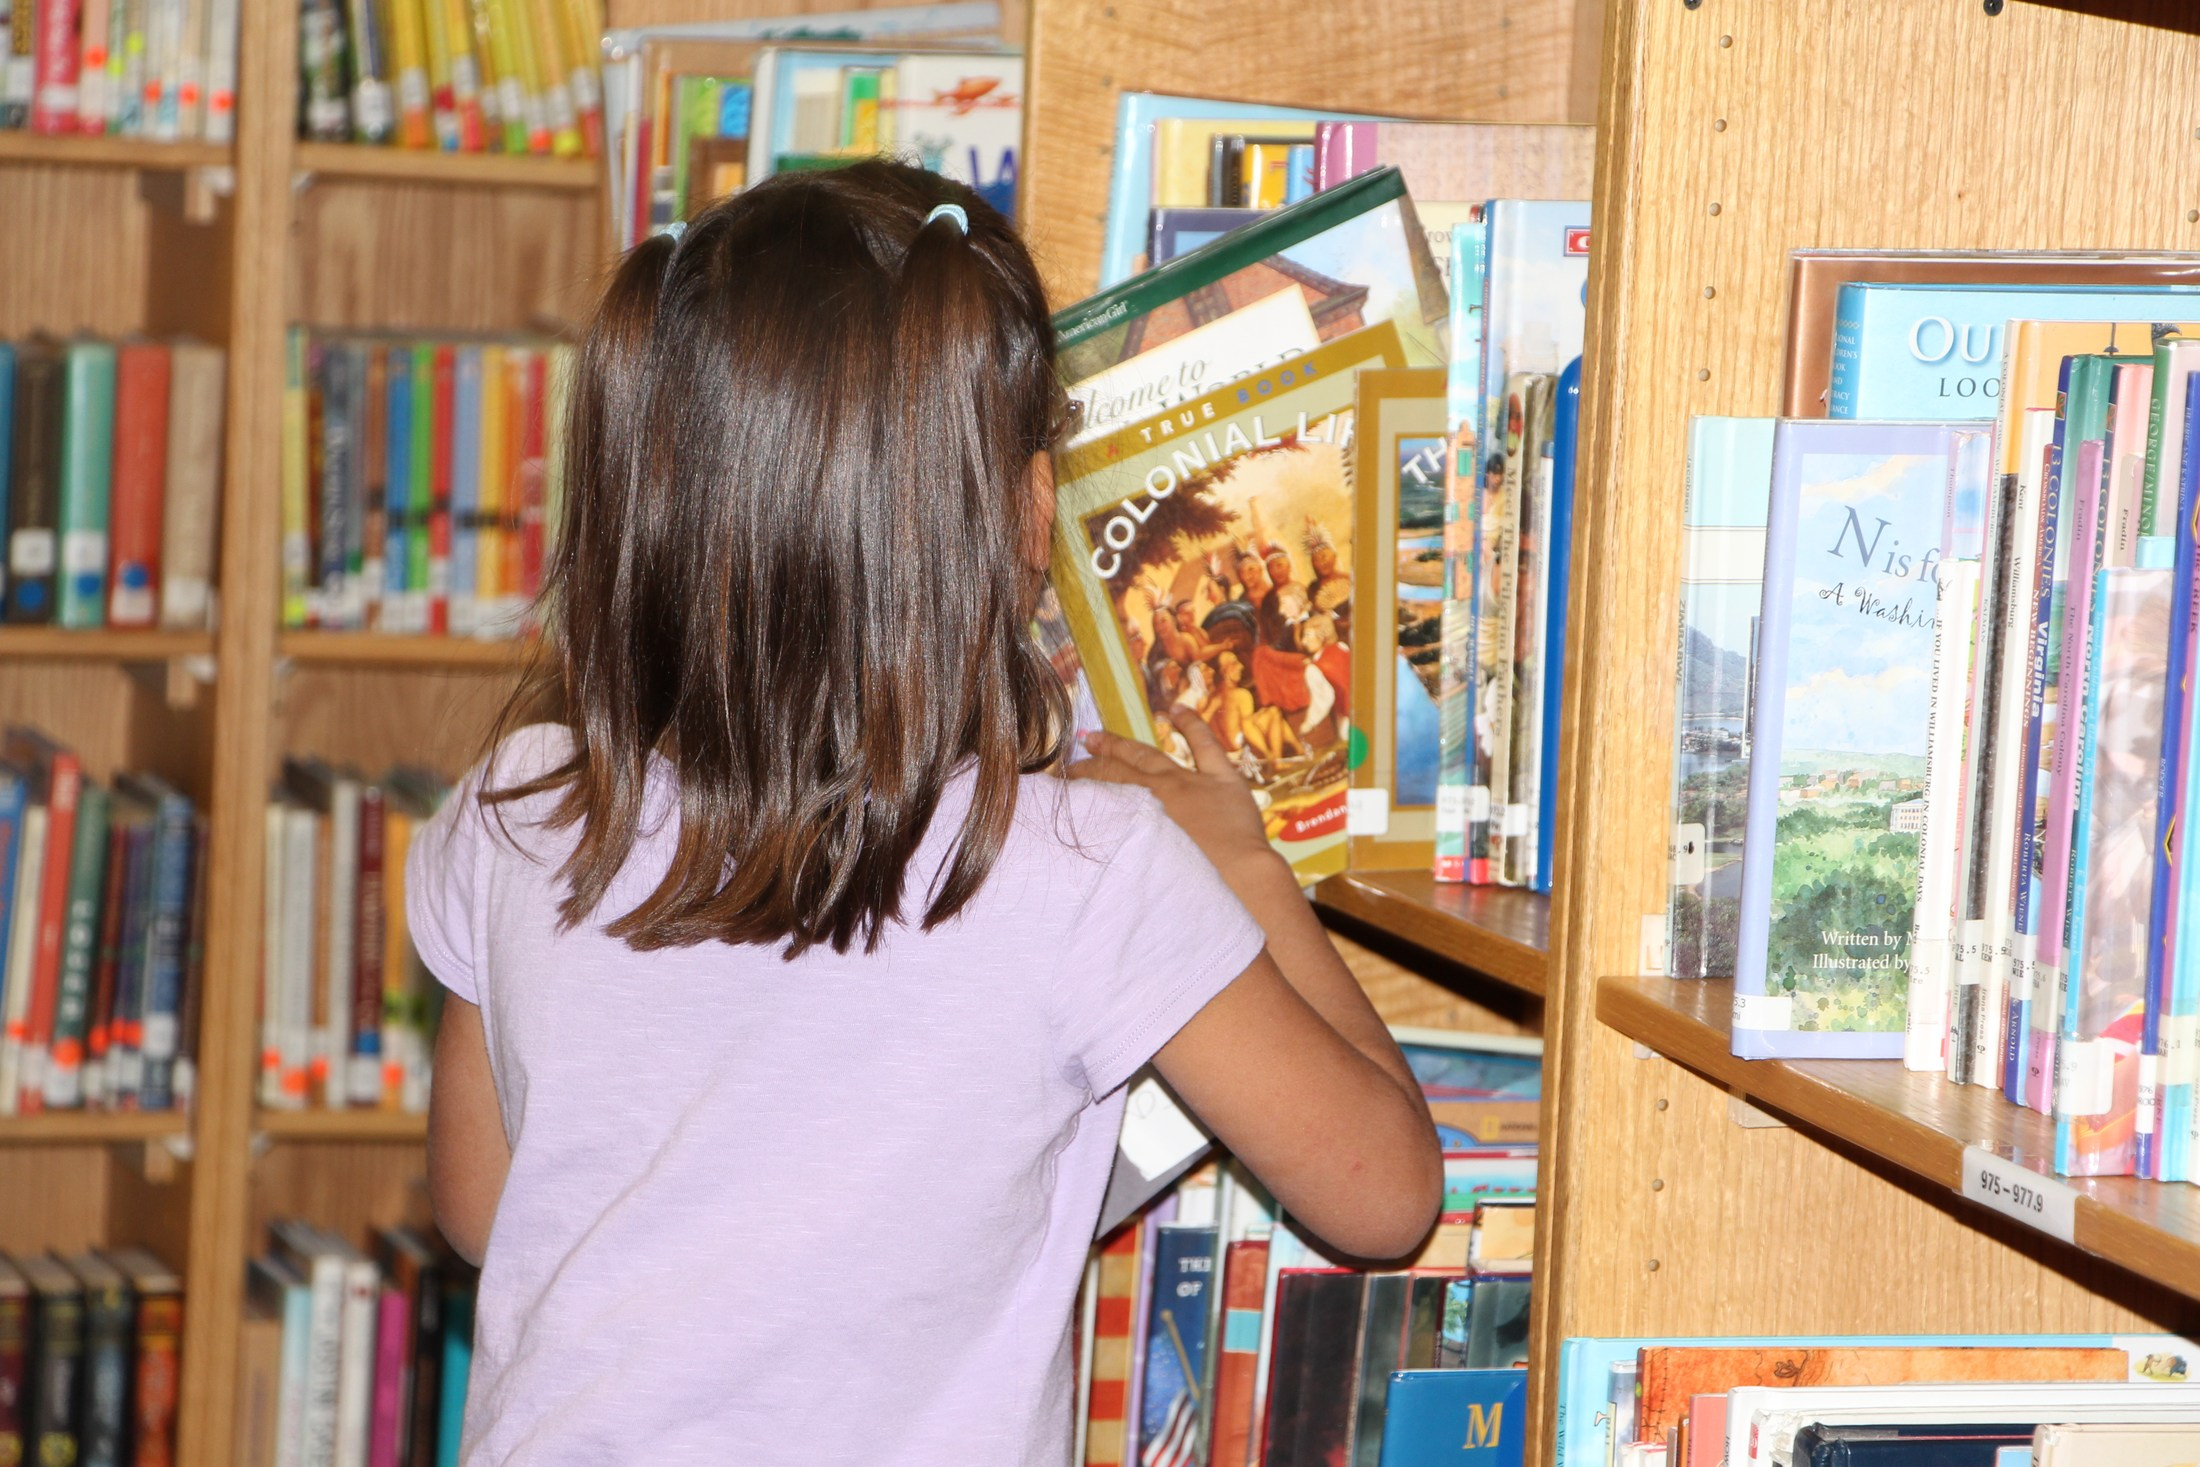 Child selecting book.